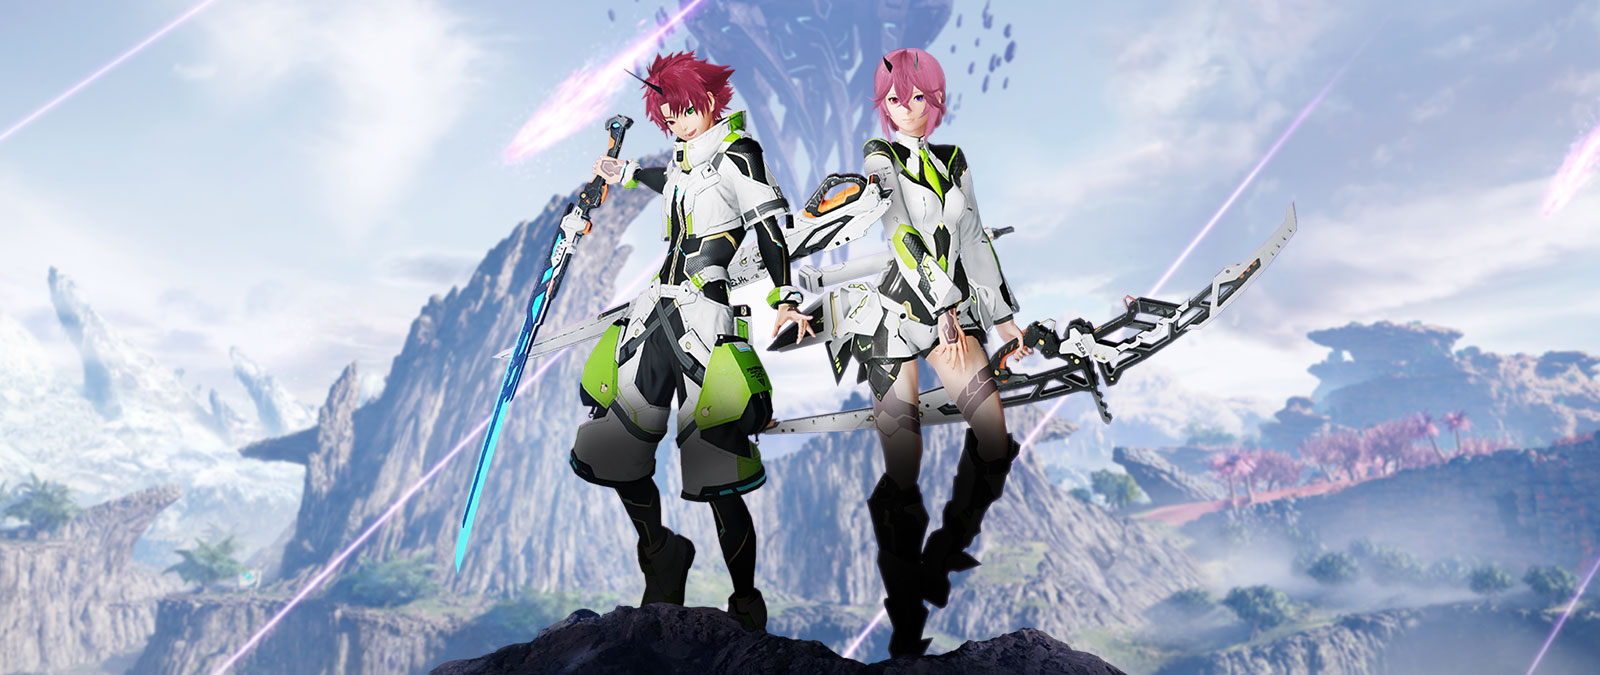 Two characters wearing white, green, and black with weapons in front of a rocky landscape